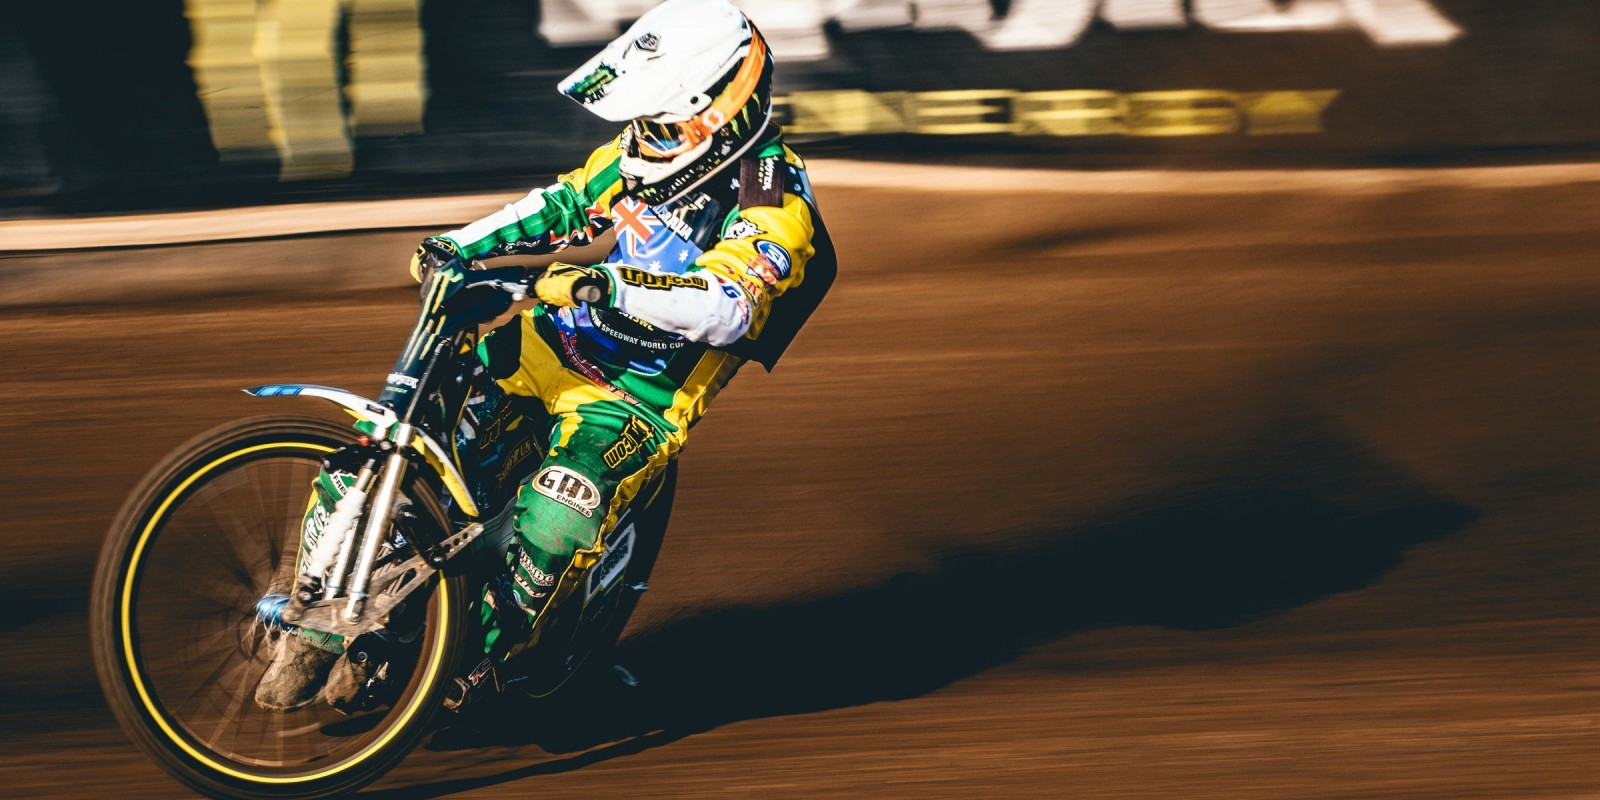 Images from Event One of the 2017 Speedway World Cup